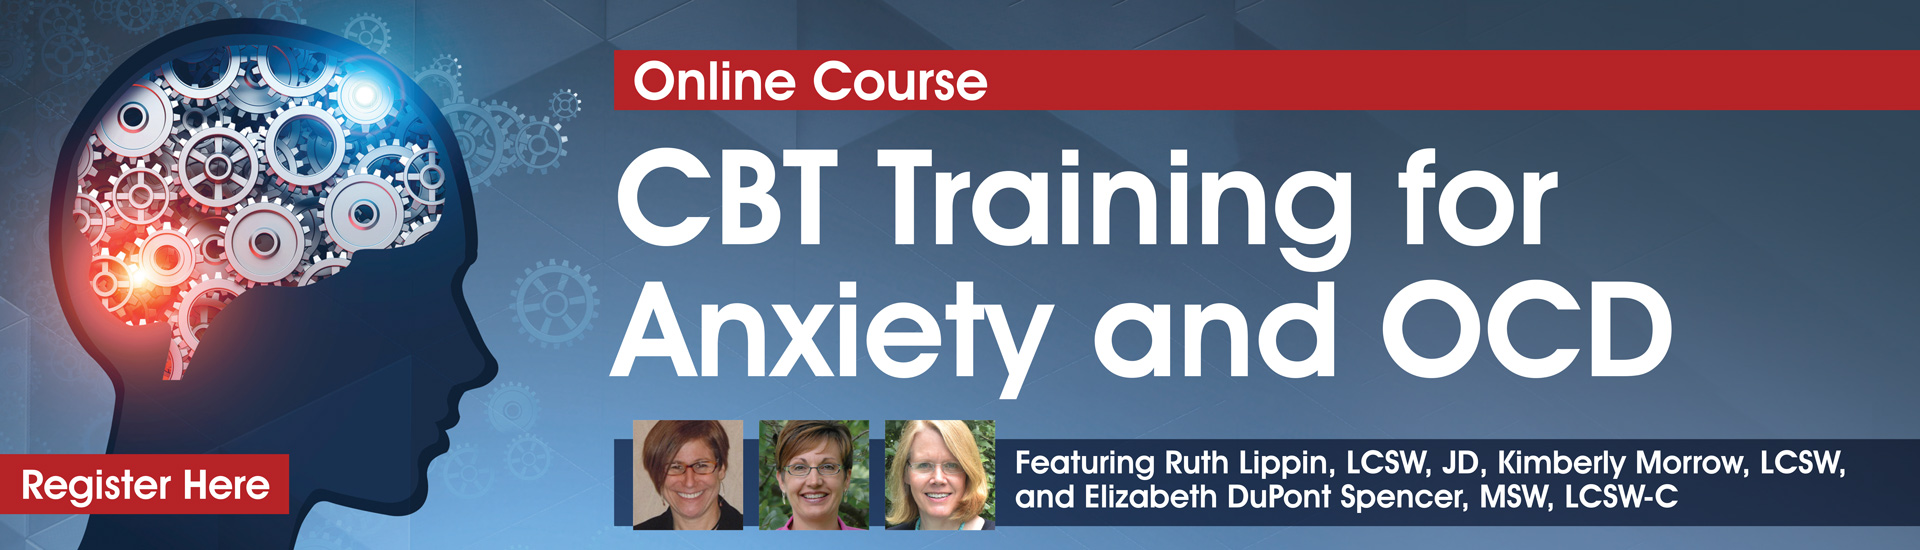 Online Course: CBT Training for Anxiety and OCD